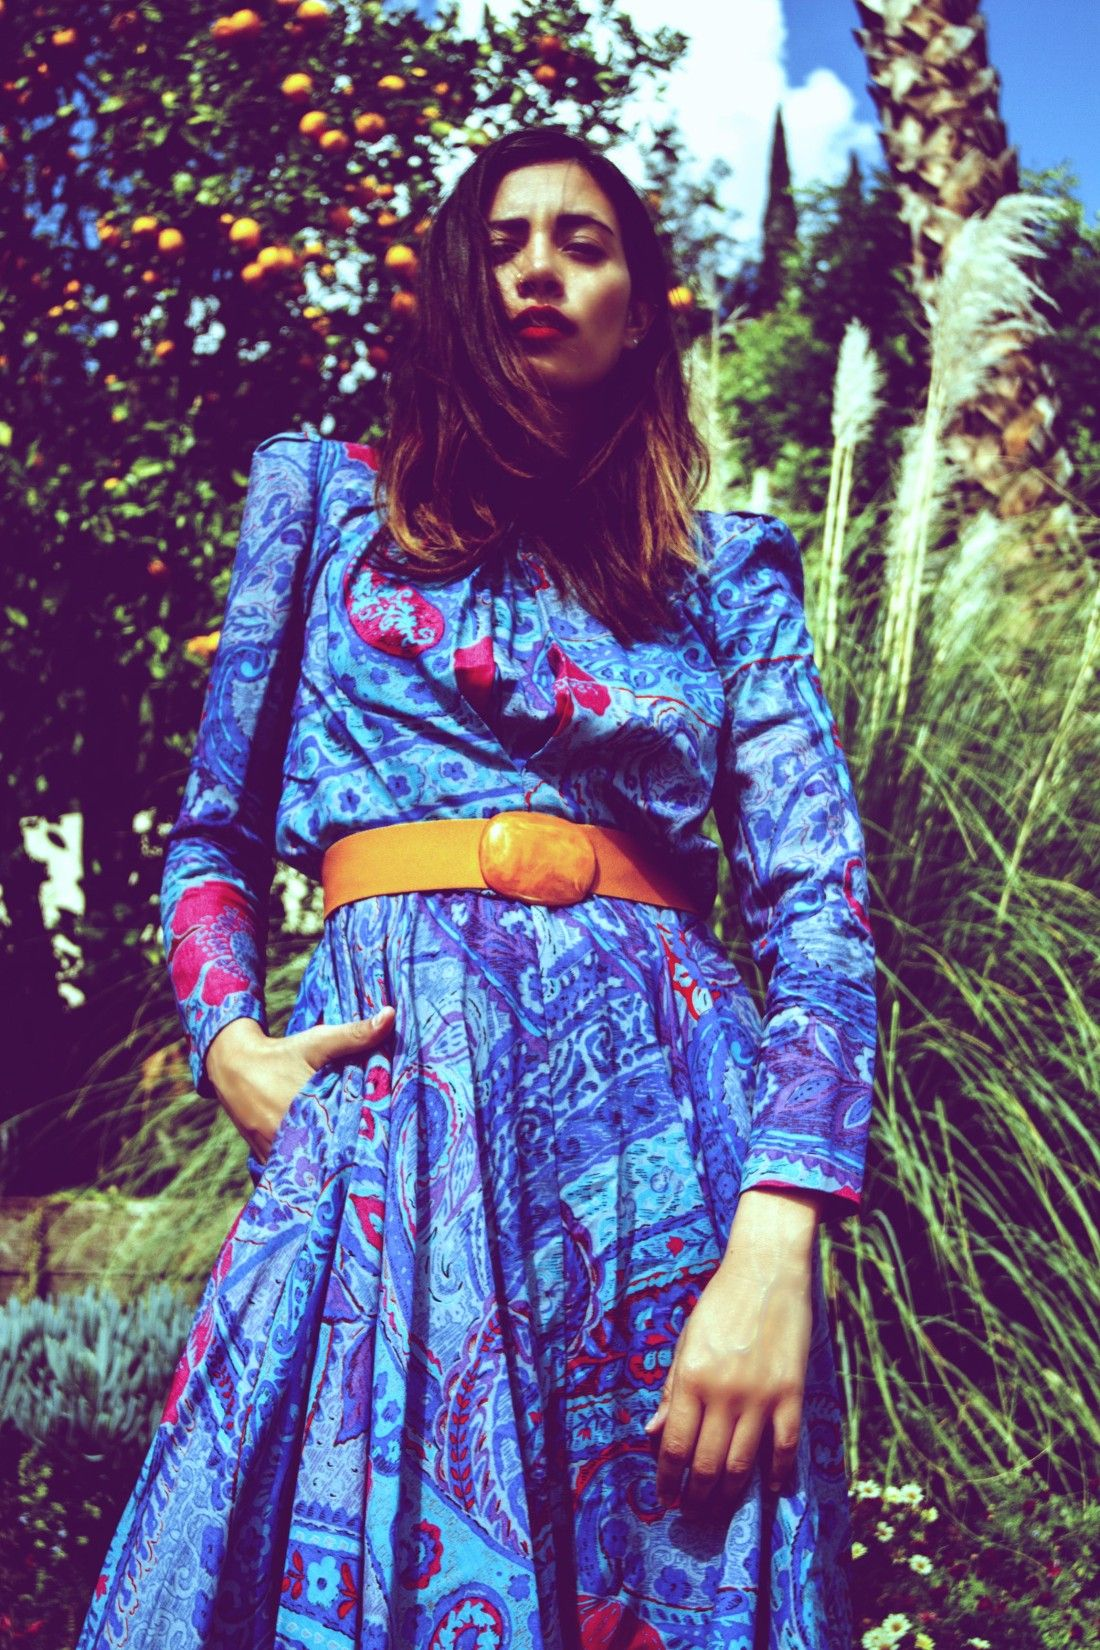 Vintage colorful Paisley Spring dress for sale now http://covetcult.com/product/kono-ny-dress/